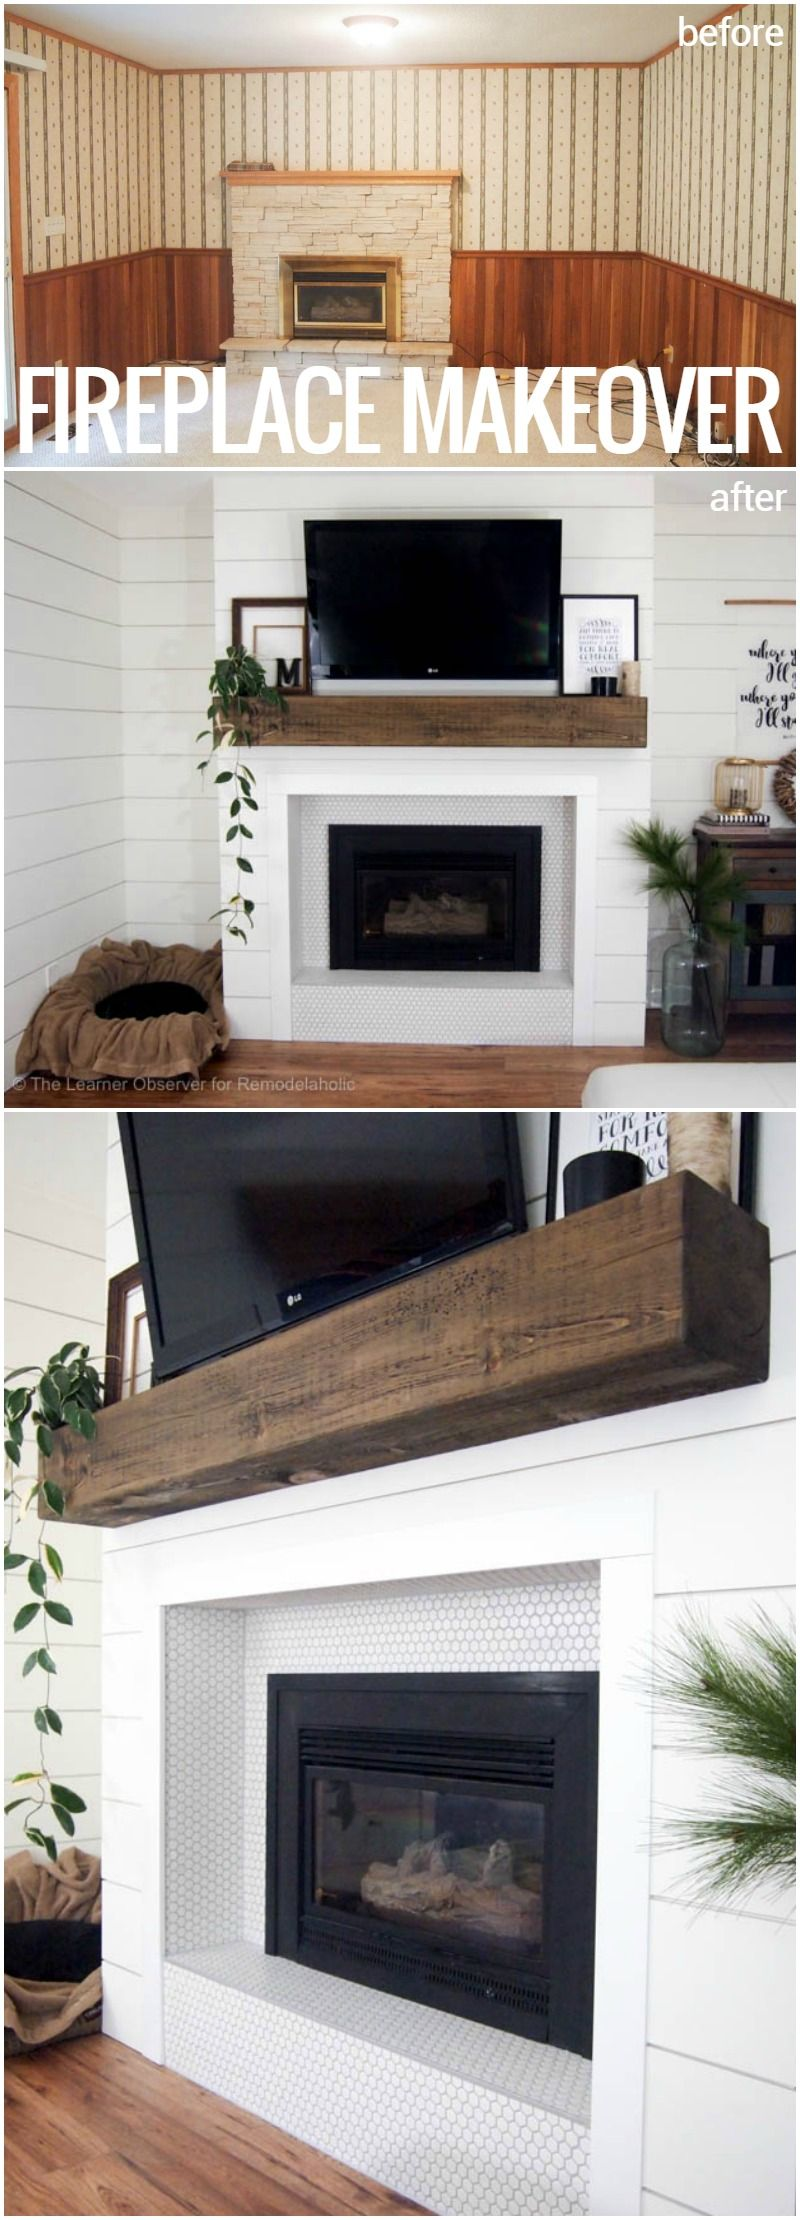 This dated mantel and fireplace makeover is stunning shiplap